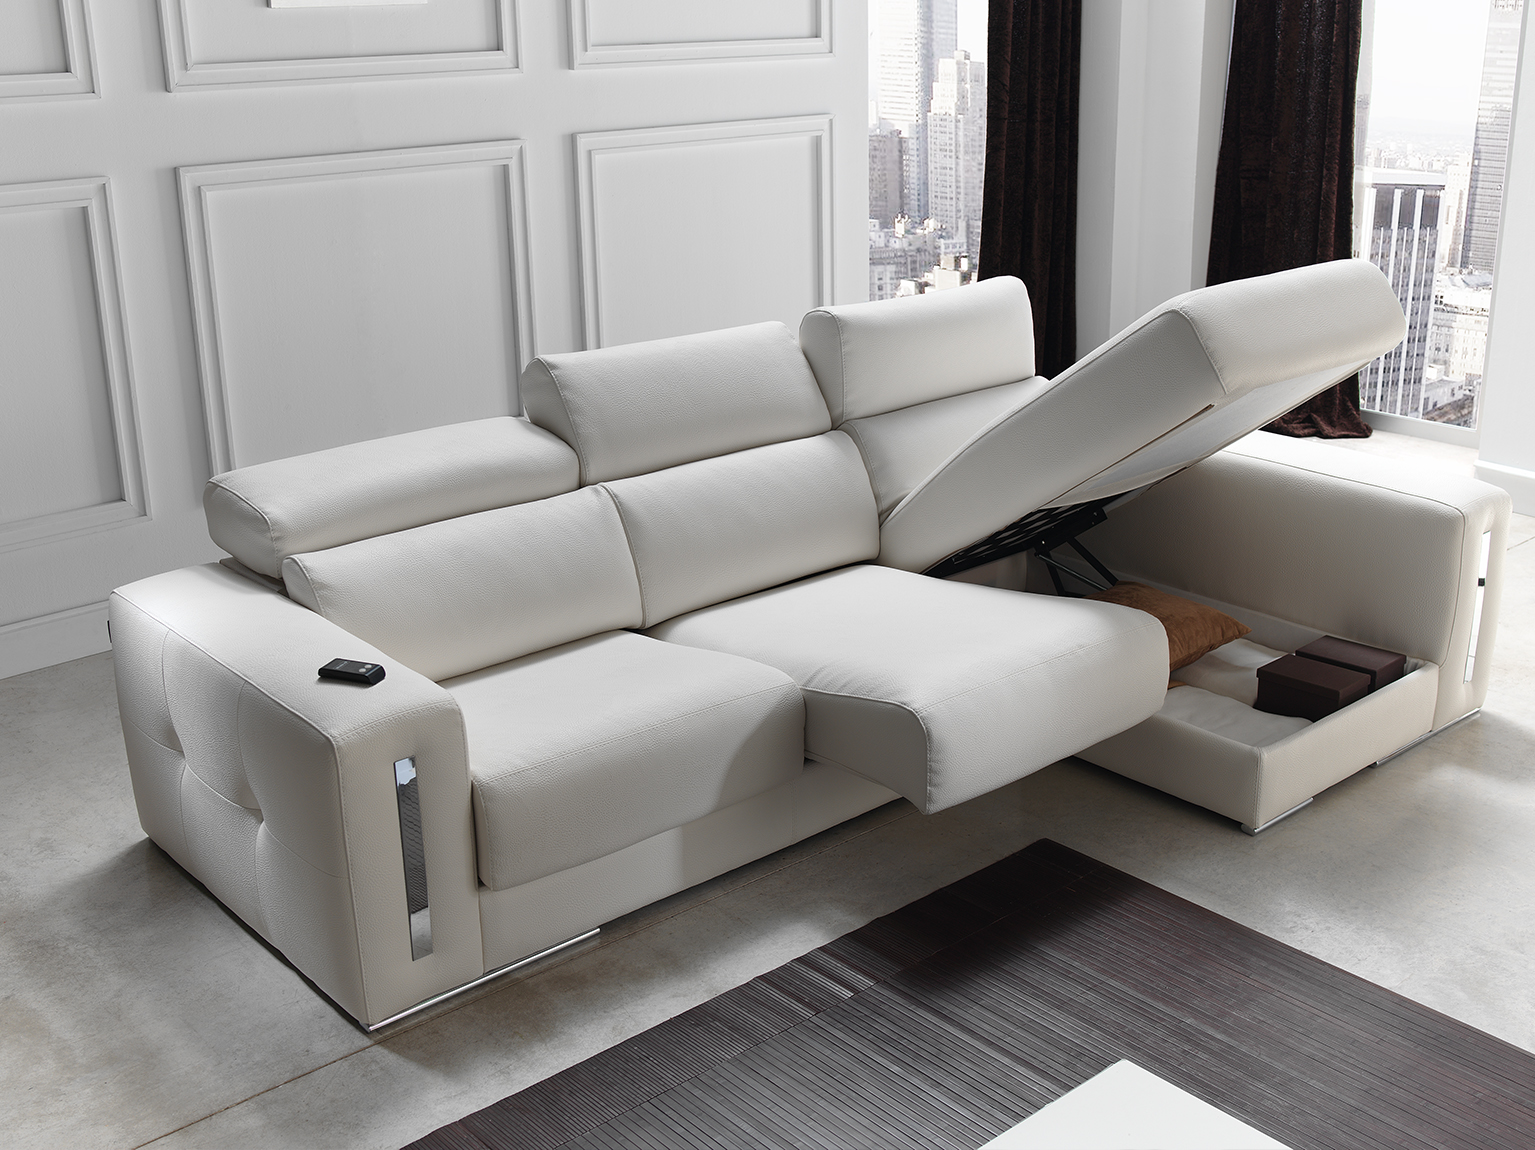 Enjoyable Sabrina Italian Reclining Leather Corner Group Sofa Blanco White Download Free Architecture Designs Sospemadebymaigaardcom